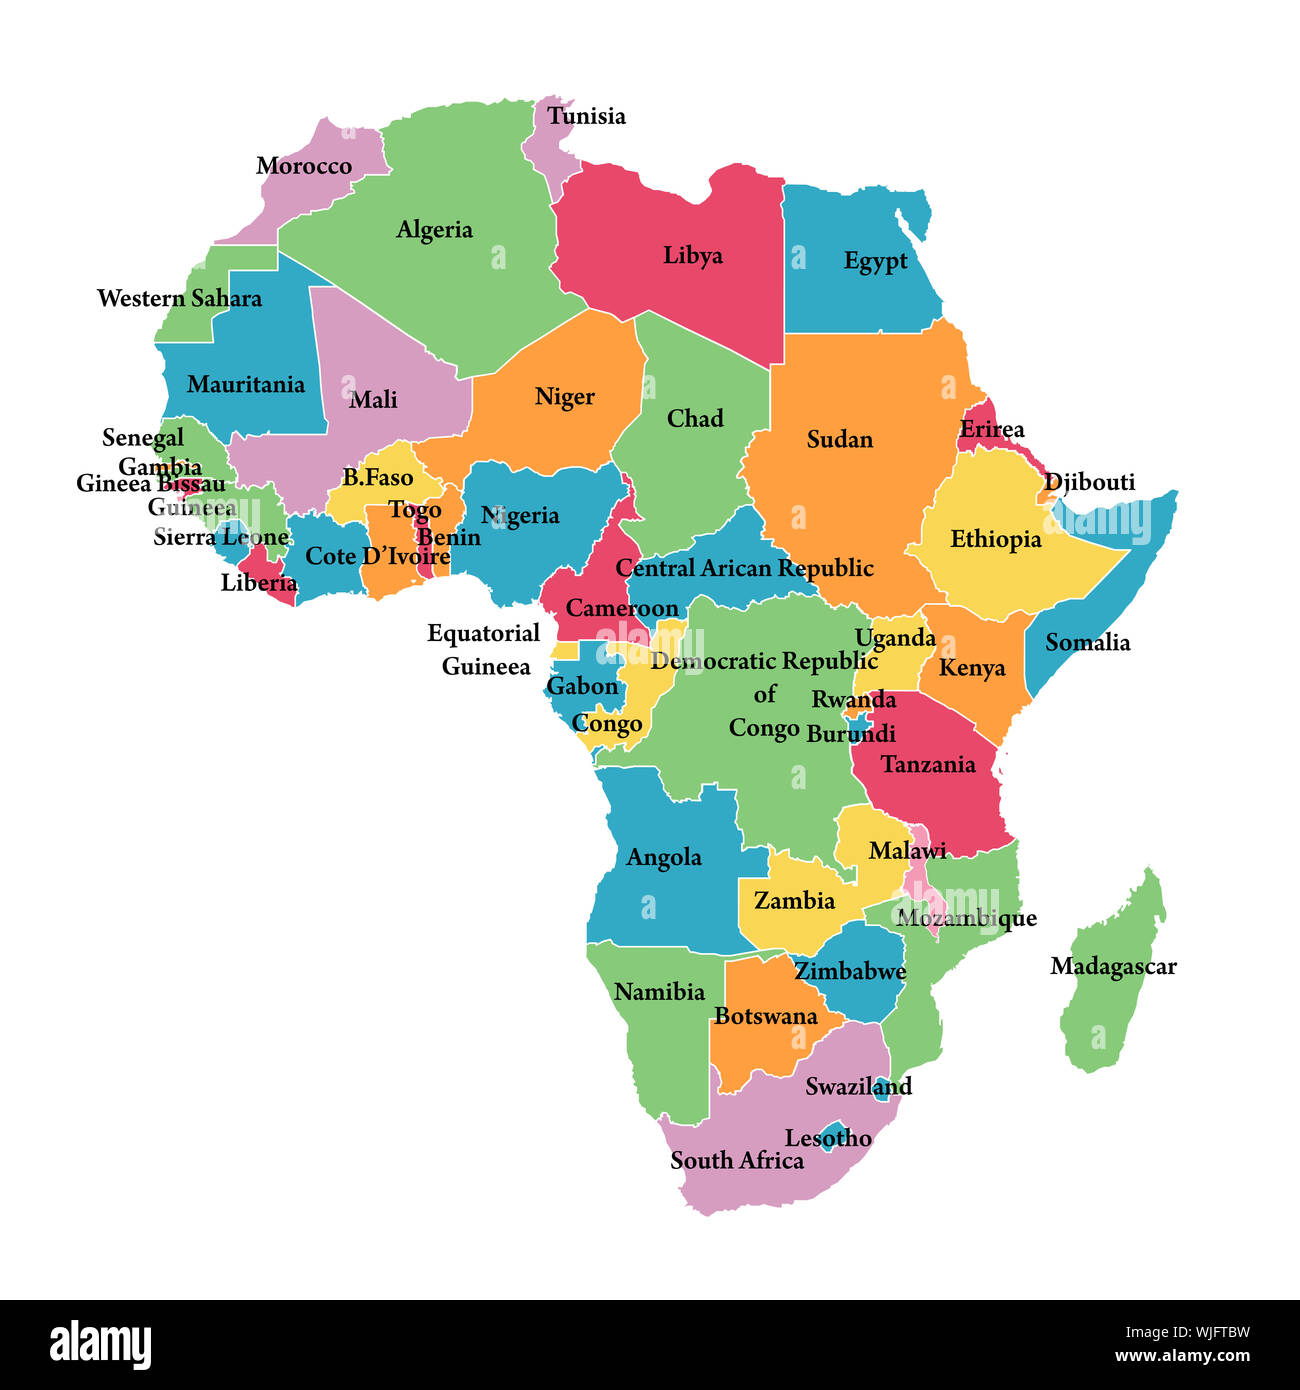 Africa Borders Map Editable map of Africa with border outlines Stock Photo   Alamy